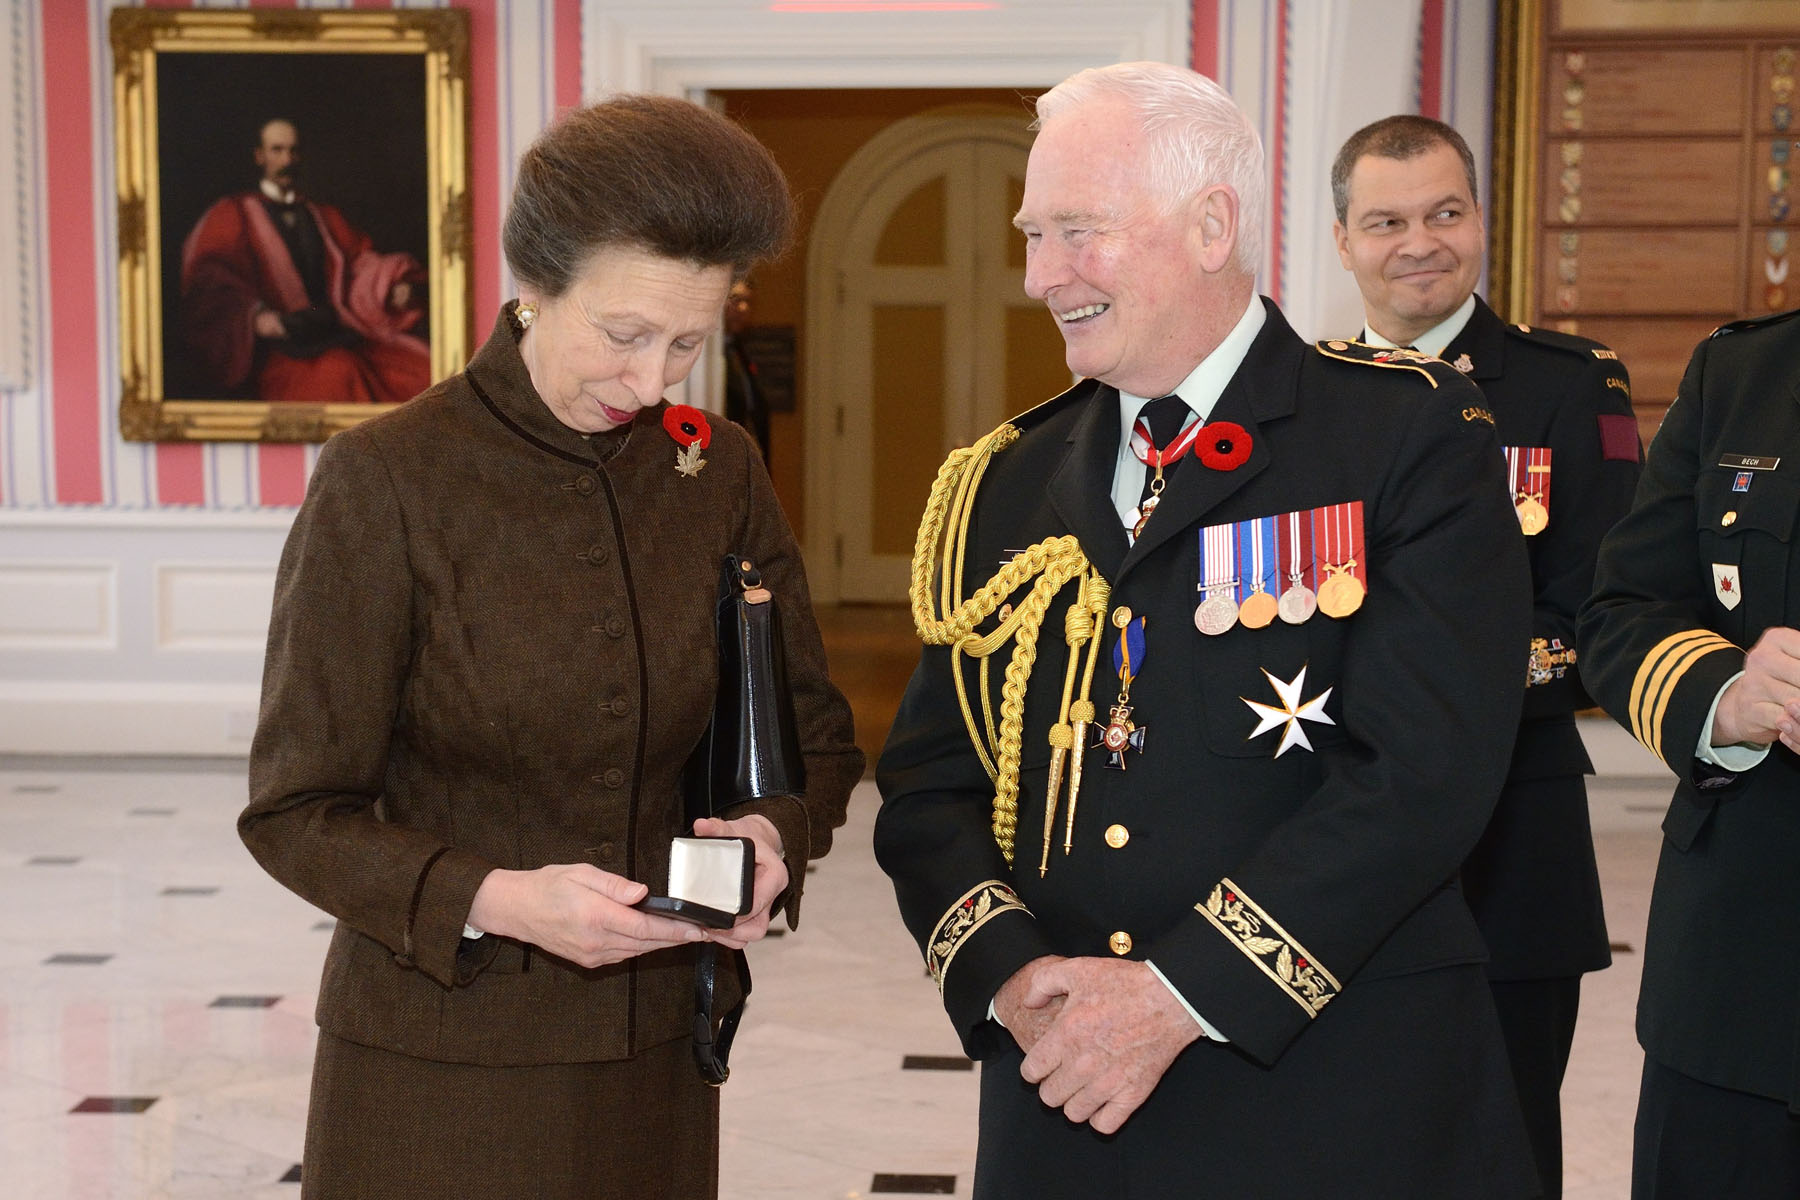 Prior to Remembrance Day Ceremony, His Excellency presented Her Royal Highness with the third clasp of the Canadian Forces' Decoration. The Canadian Forces' Decoration is awarded to officers and non-commissioned members of the Canadian Armed Forces who have completed 12 years of service. A clasp is awarded for every subsequent period of 10 years of qualifying service.